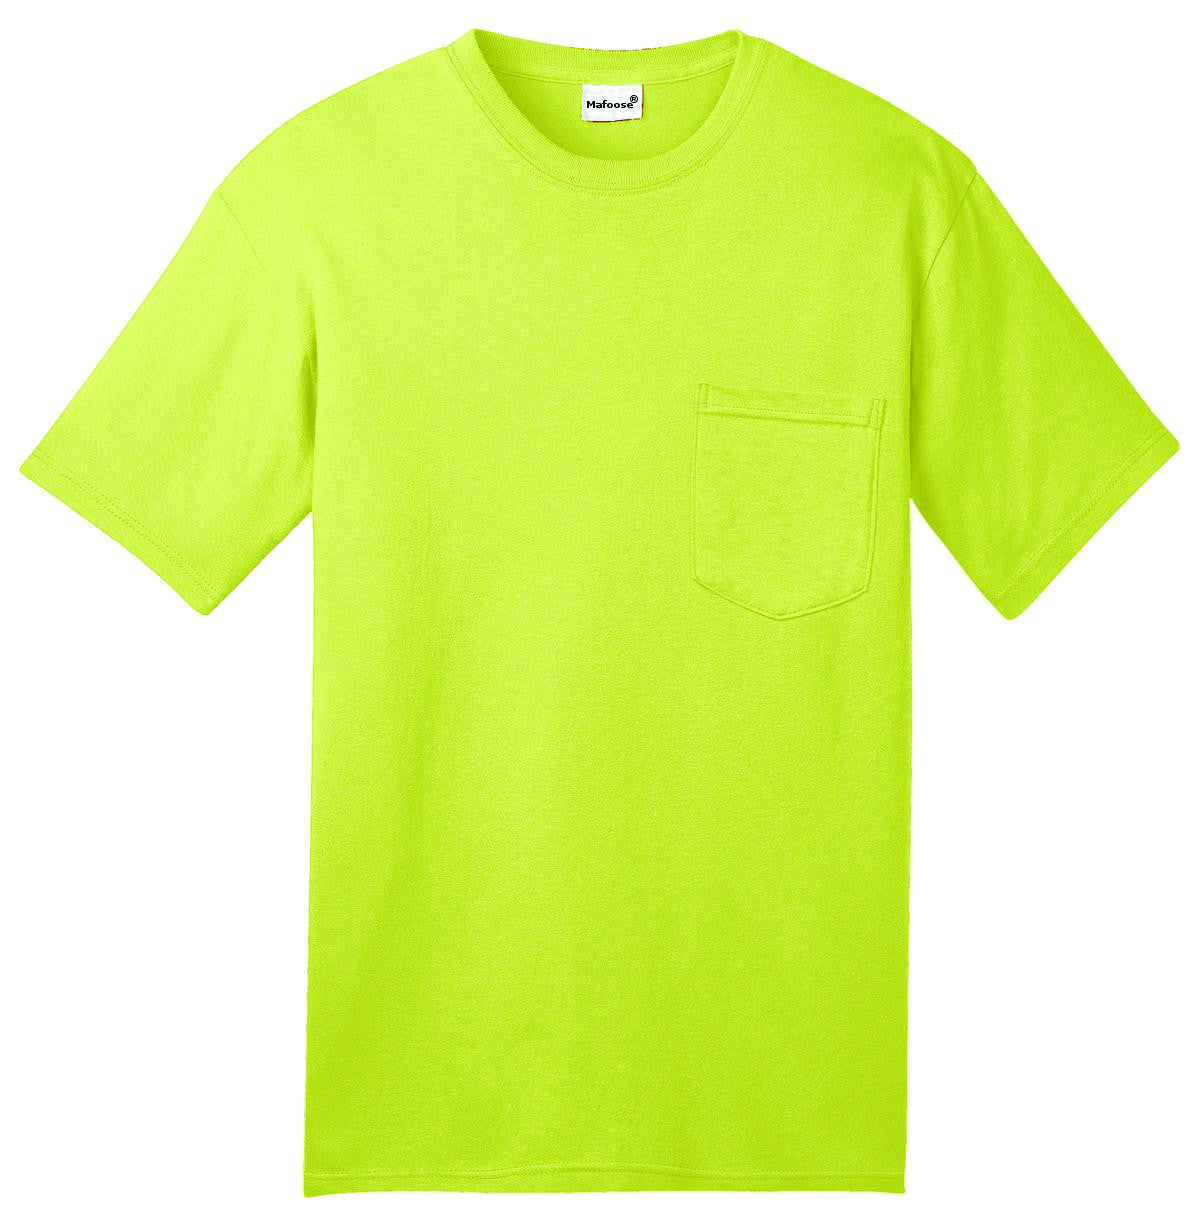 Mafoose Men's All American Tee Shirt with Pocket Safety Green-Front